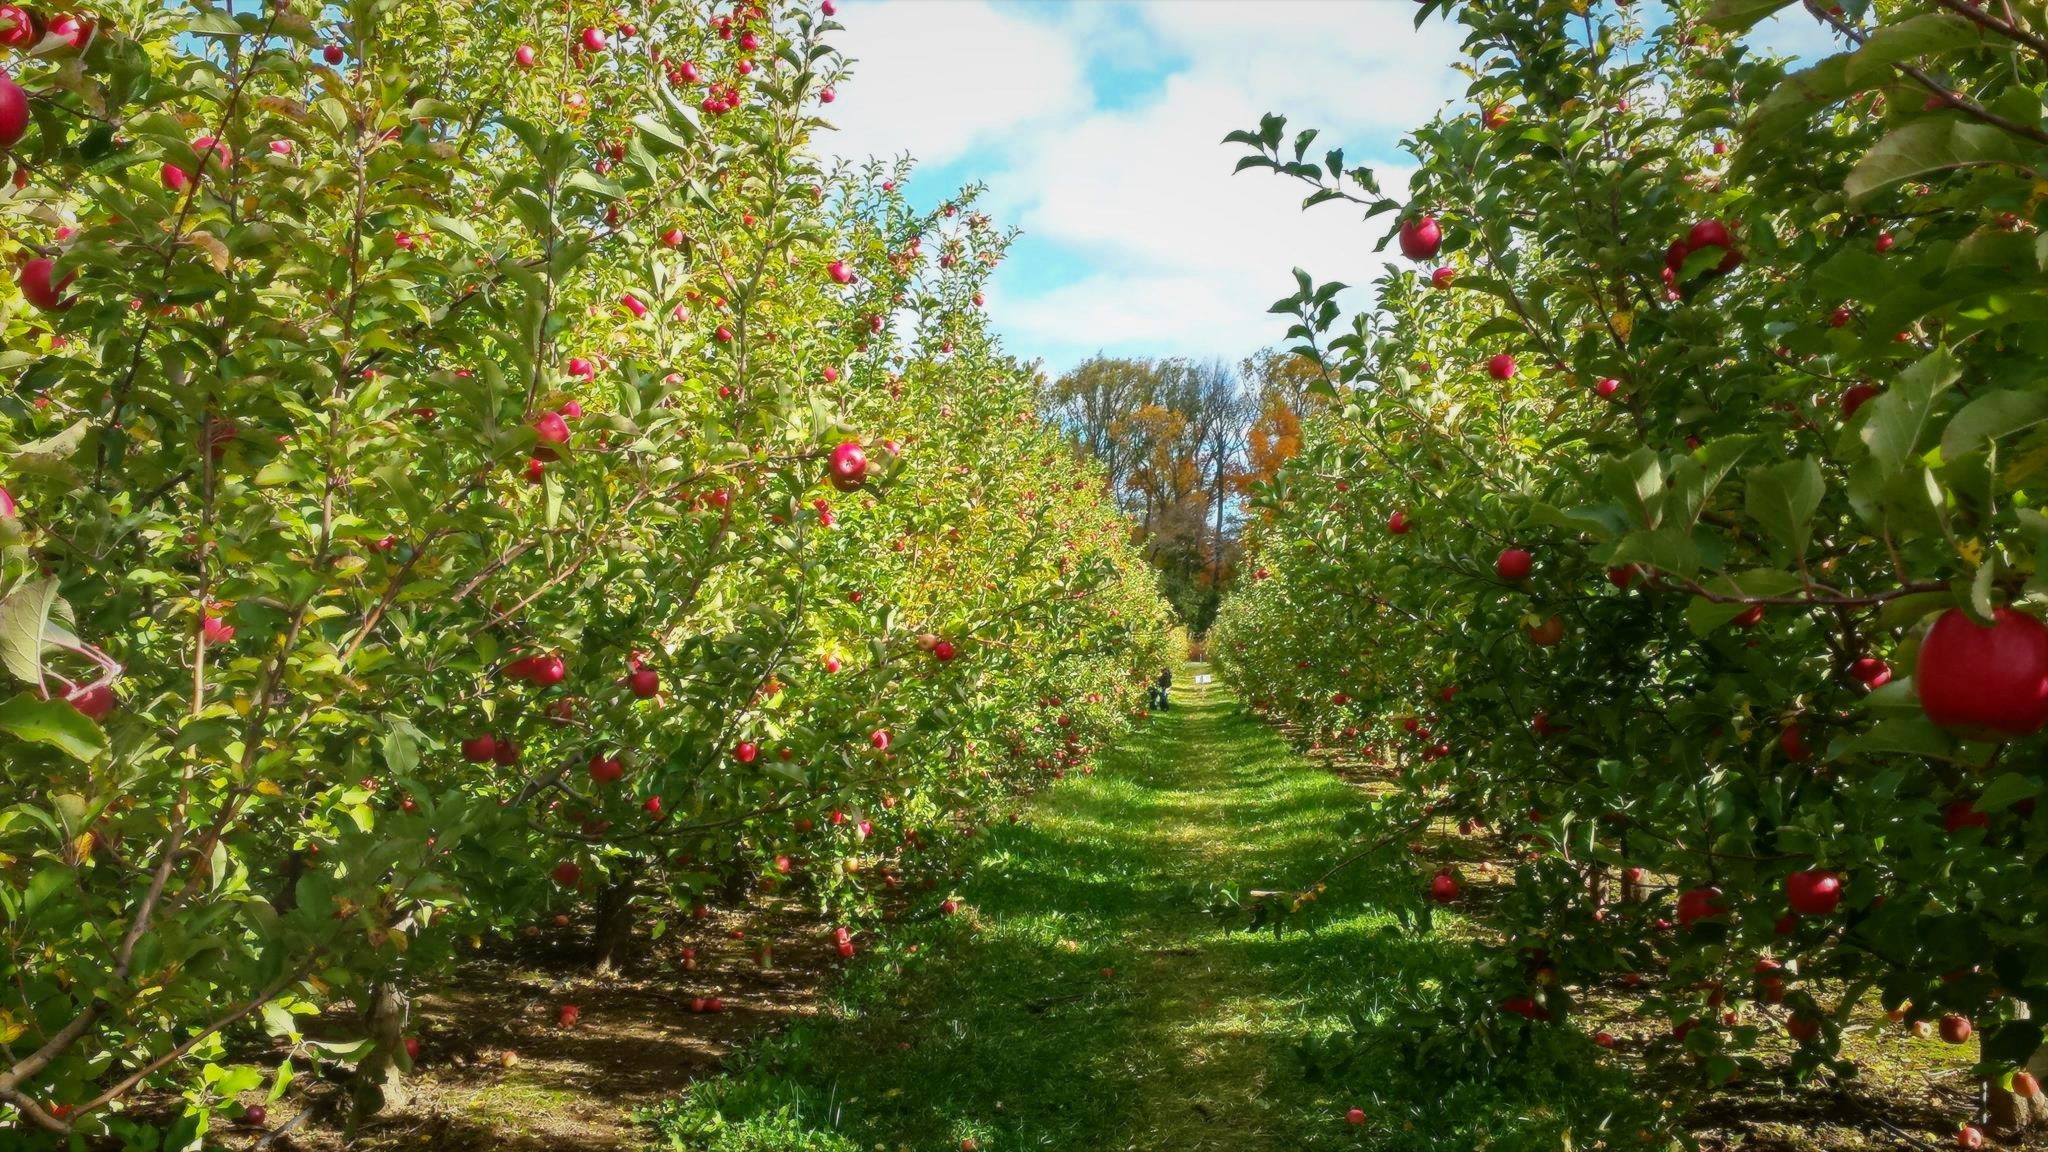 About Solebury Orchards | Solebury Orchards